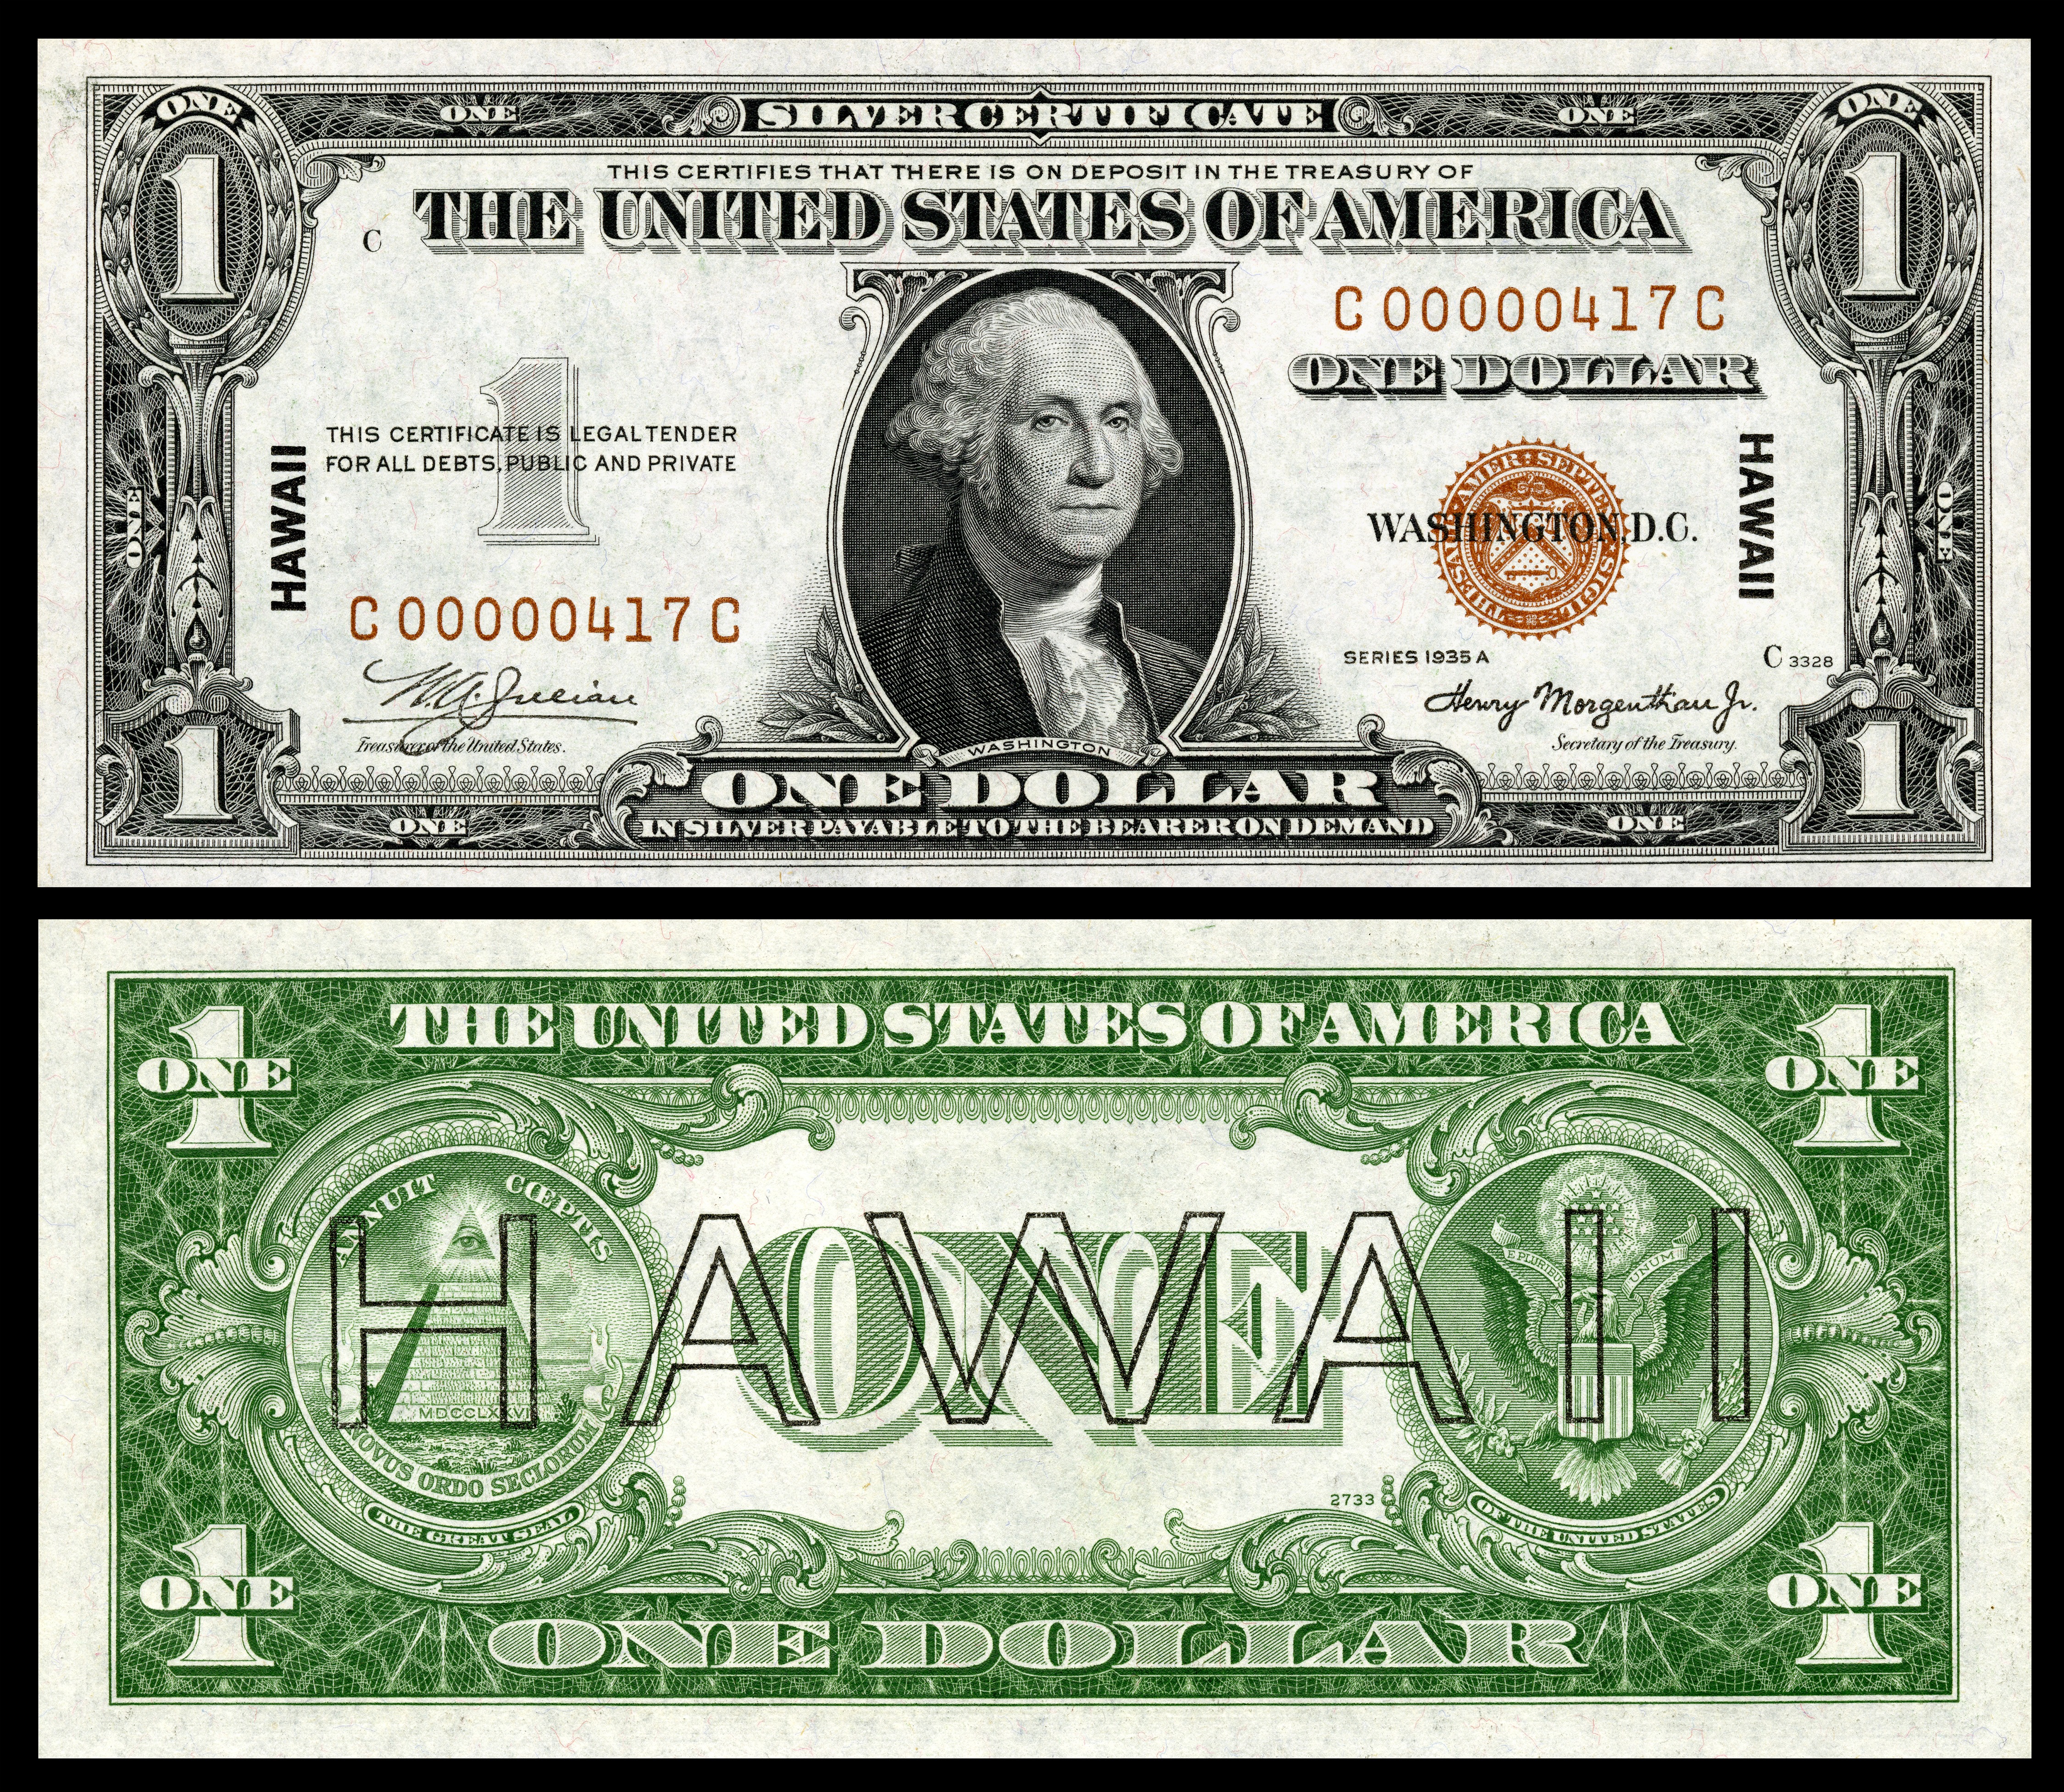 Silver certificate united states wikipedia 1 silver certificate series 1935a fr2300 depicting george washington xflitez Choice Image